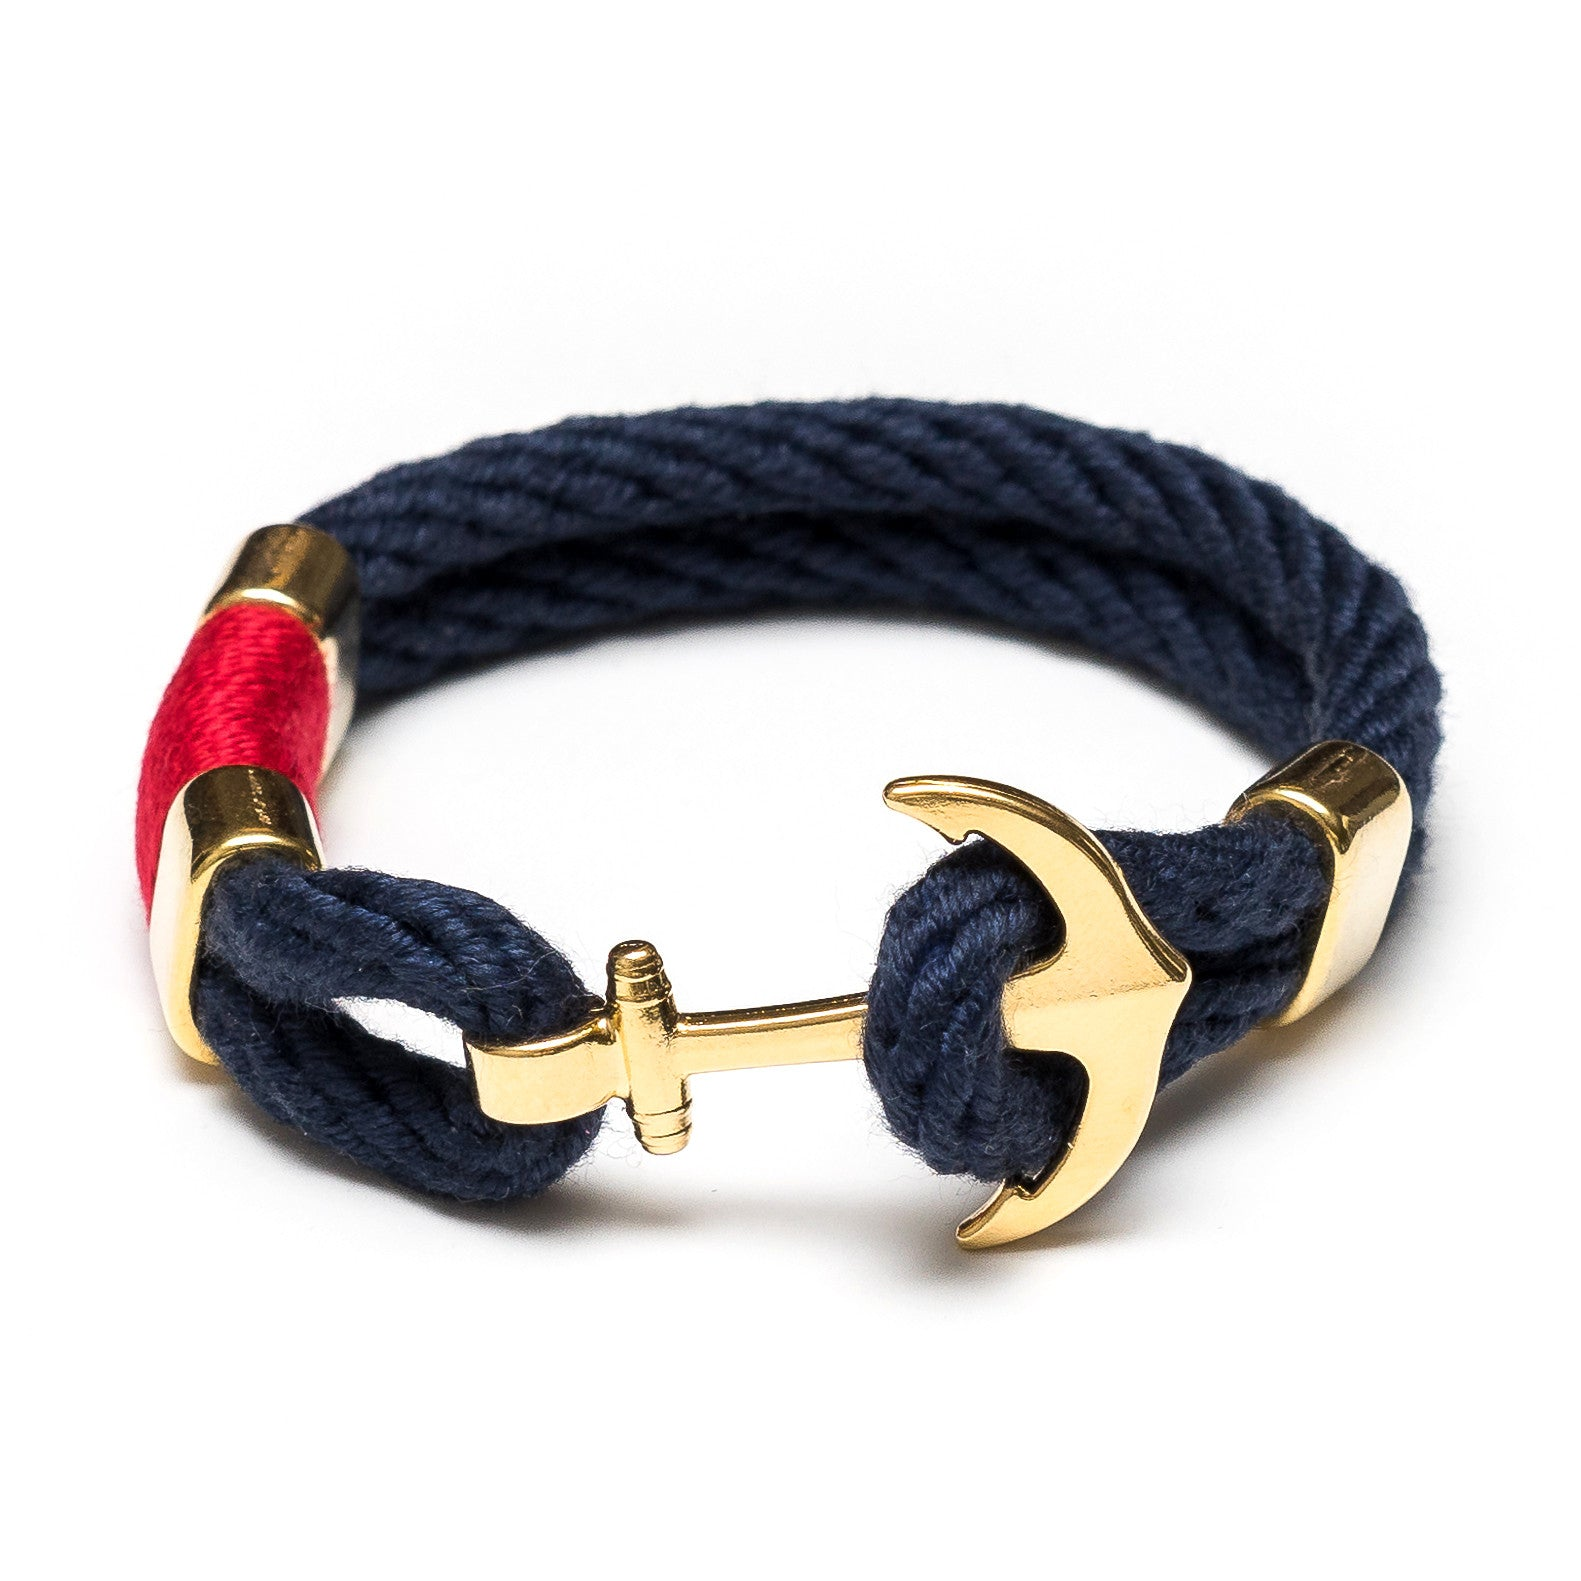 sailor rope bracelet bracelets mens products cord sea charm nautical